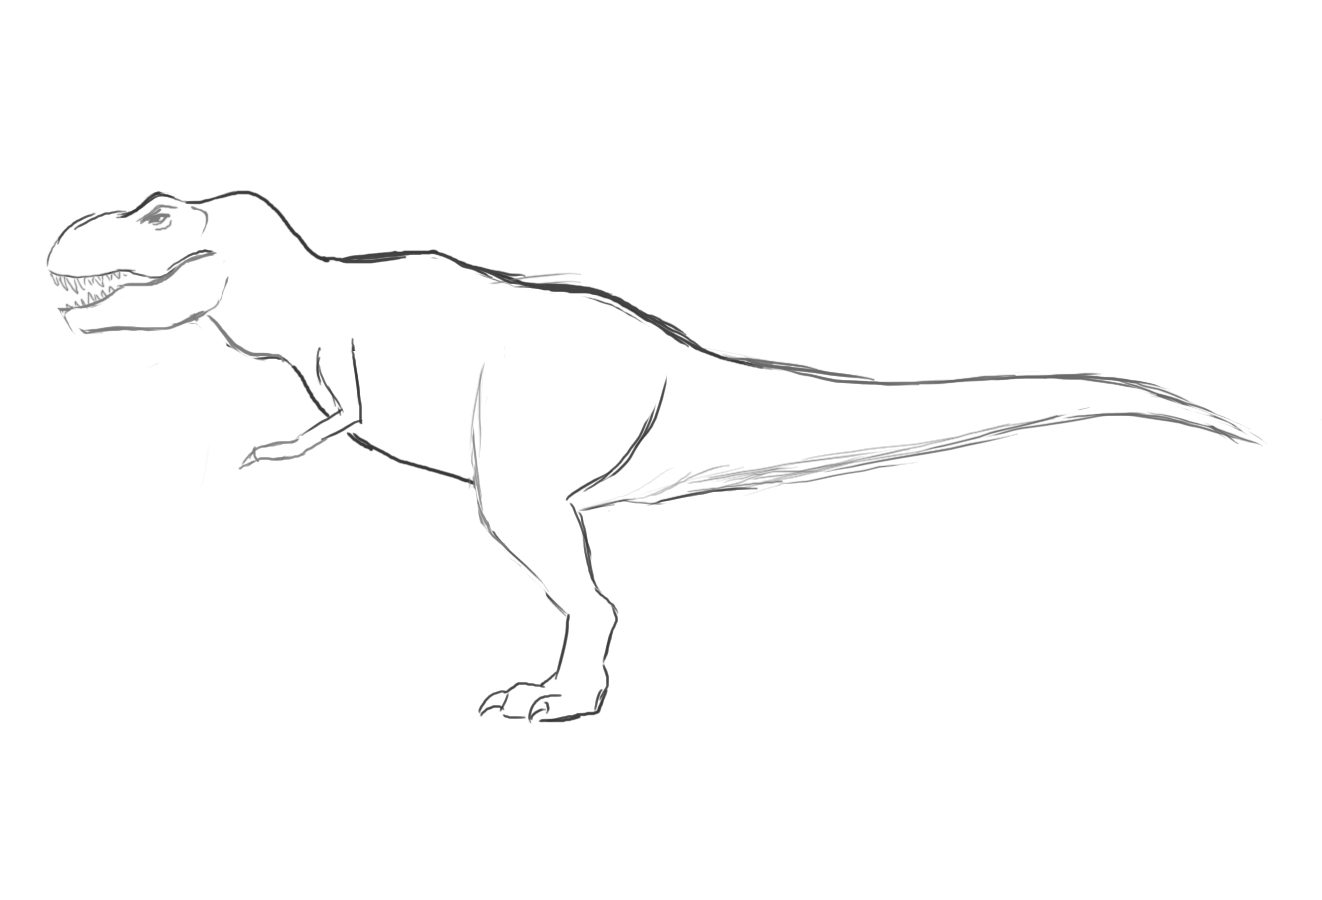 Modeling Uvmapping And Texturing A Low Poly T Rex In Blender Part 1